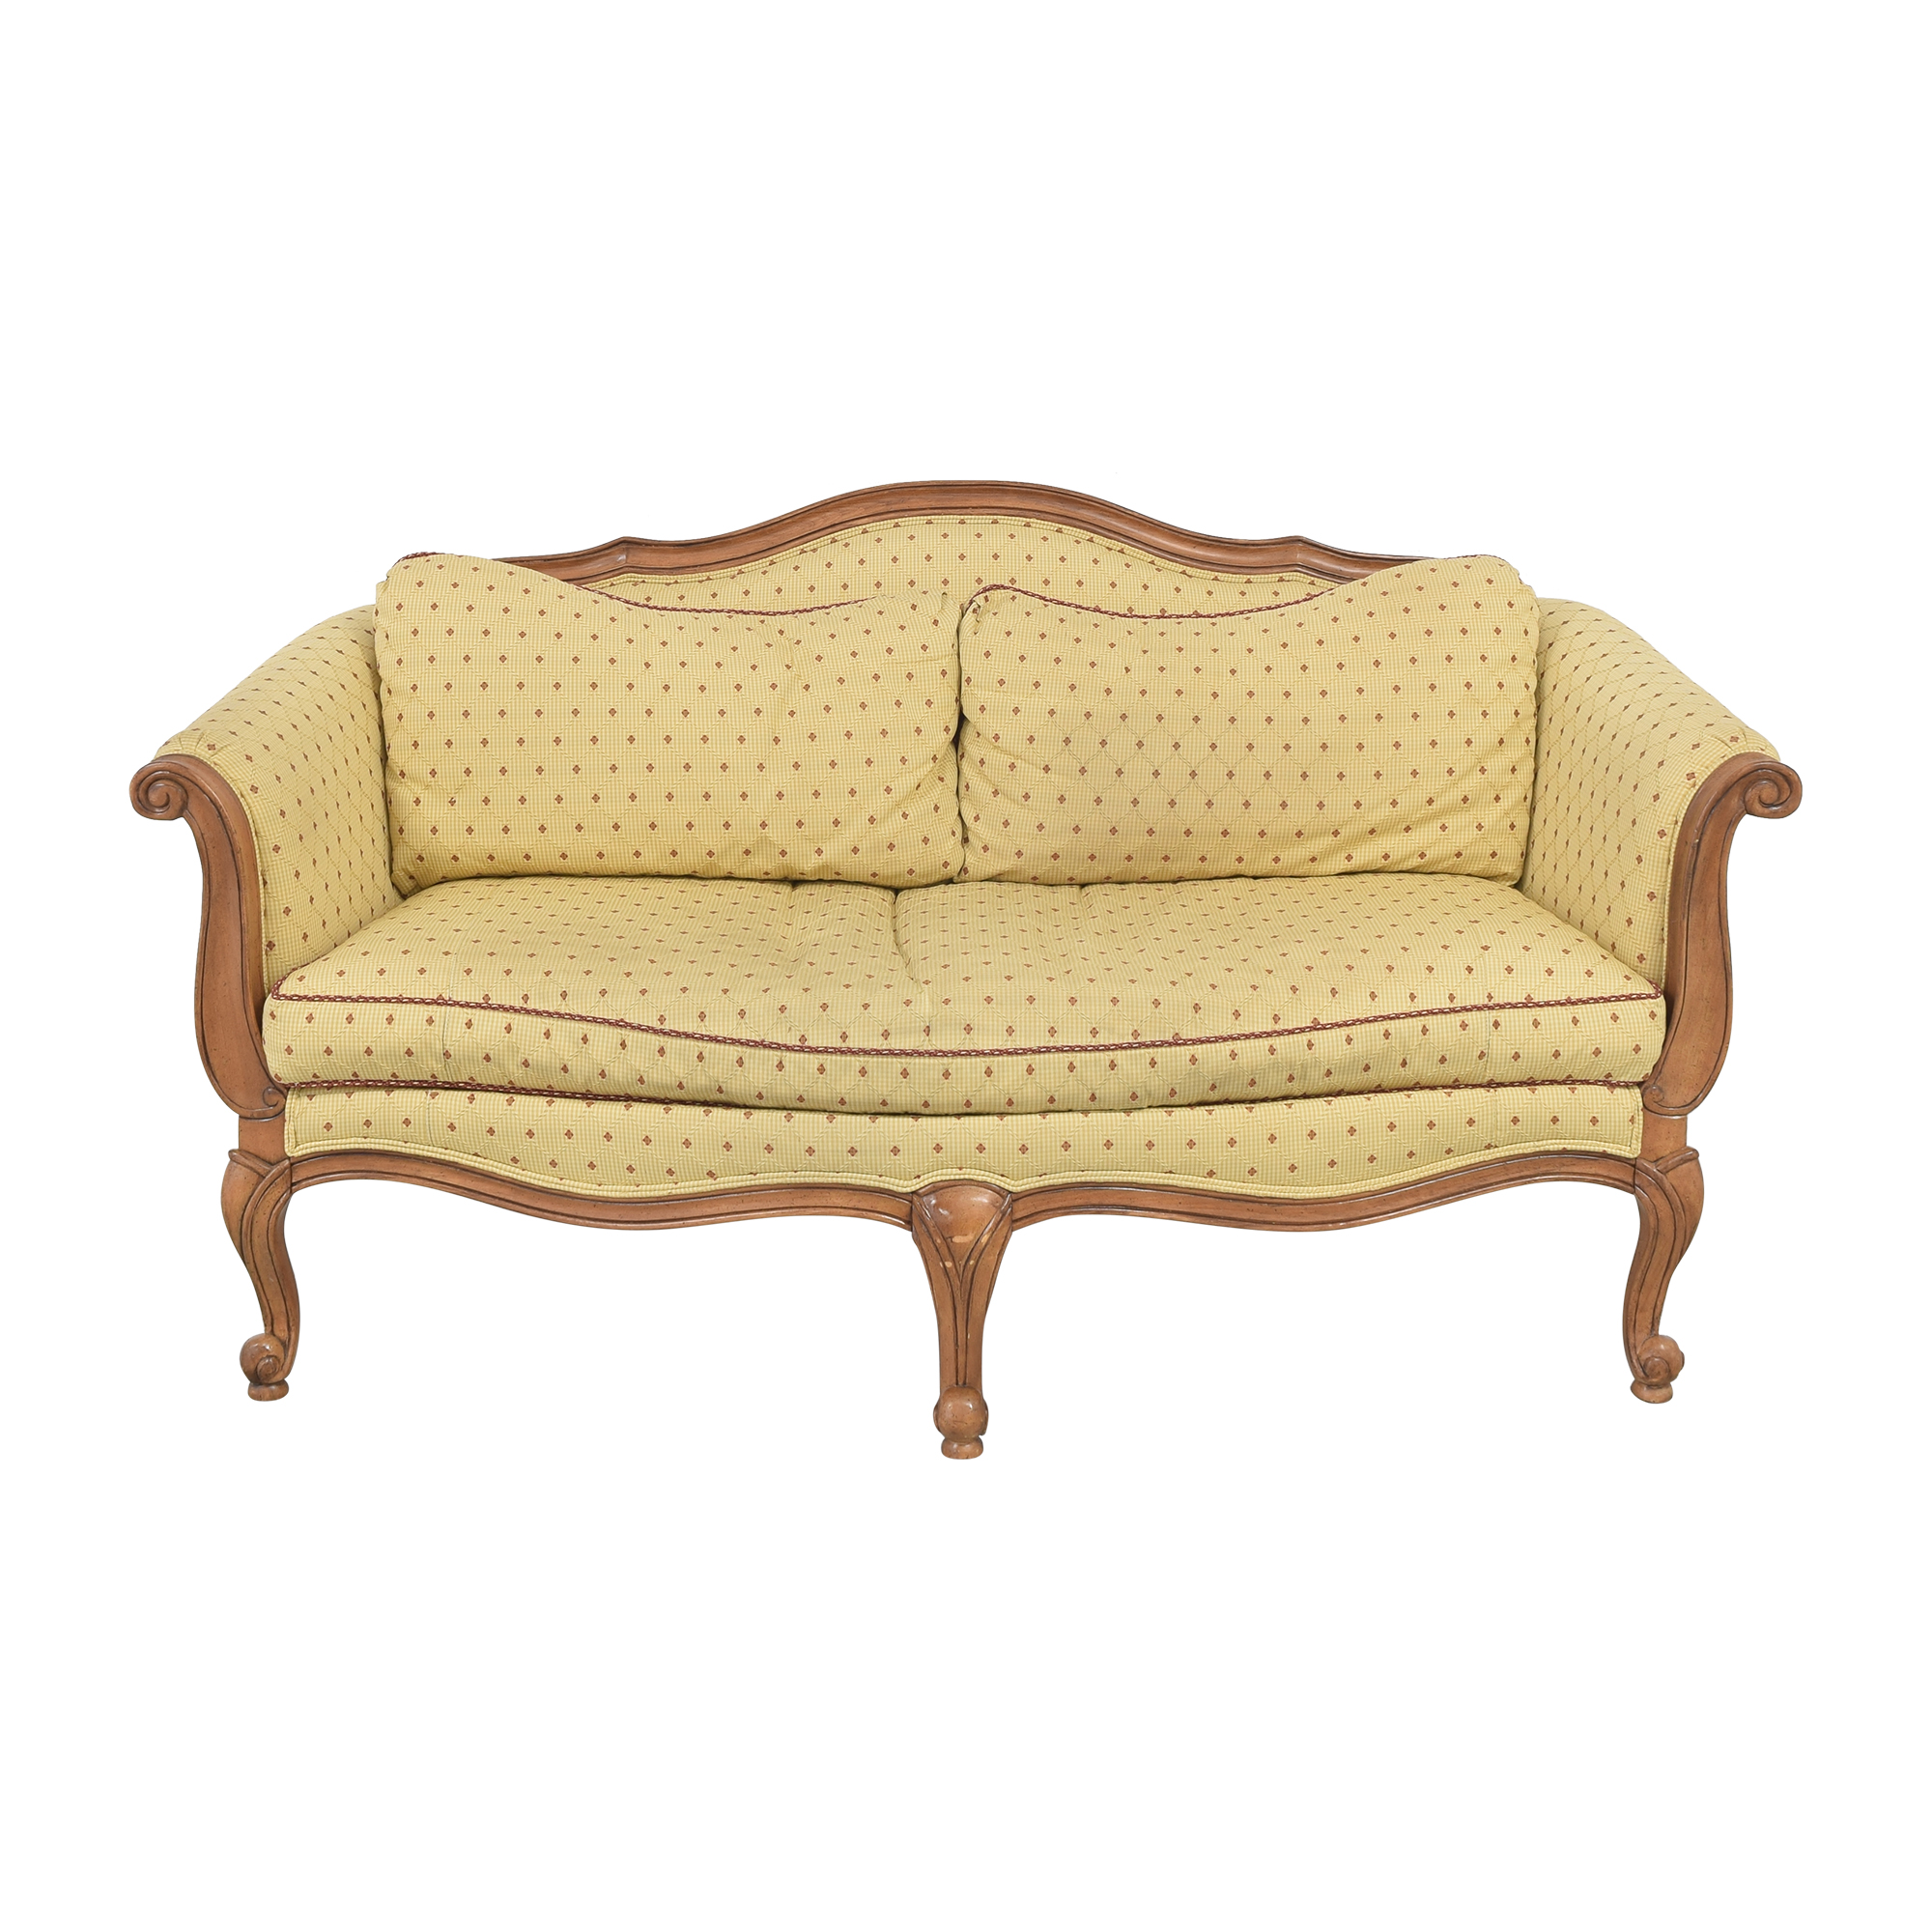 Ethan Allen Evette Settee / Classic Sofas